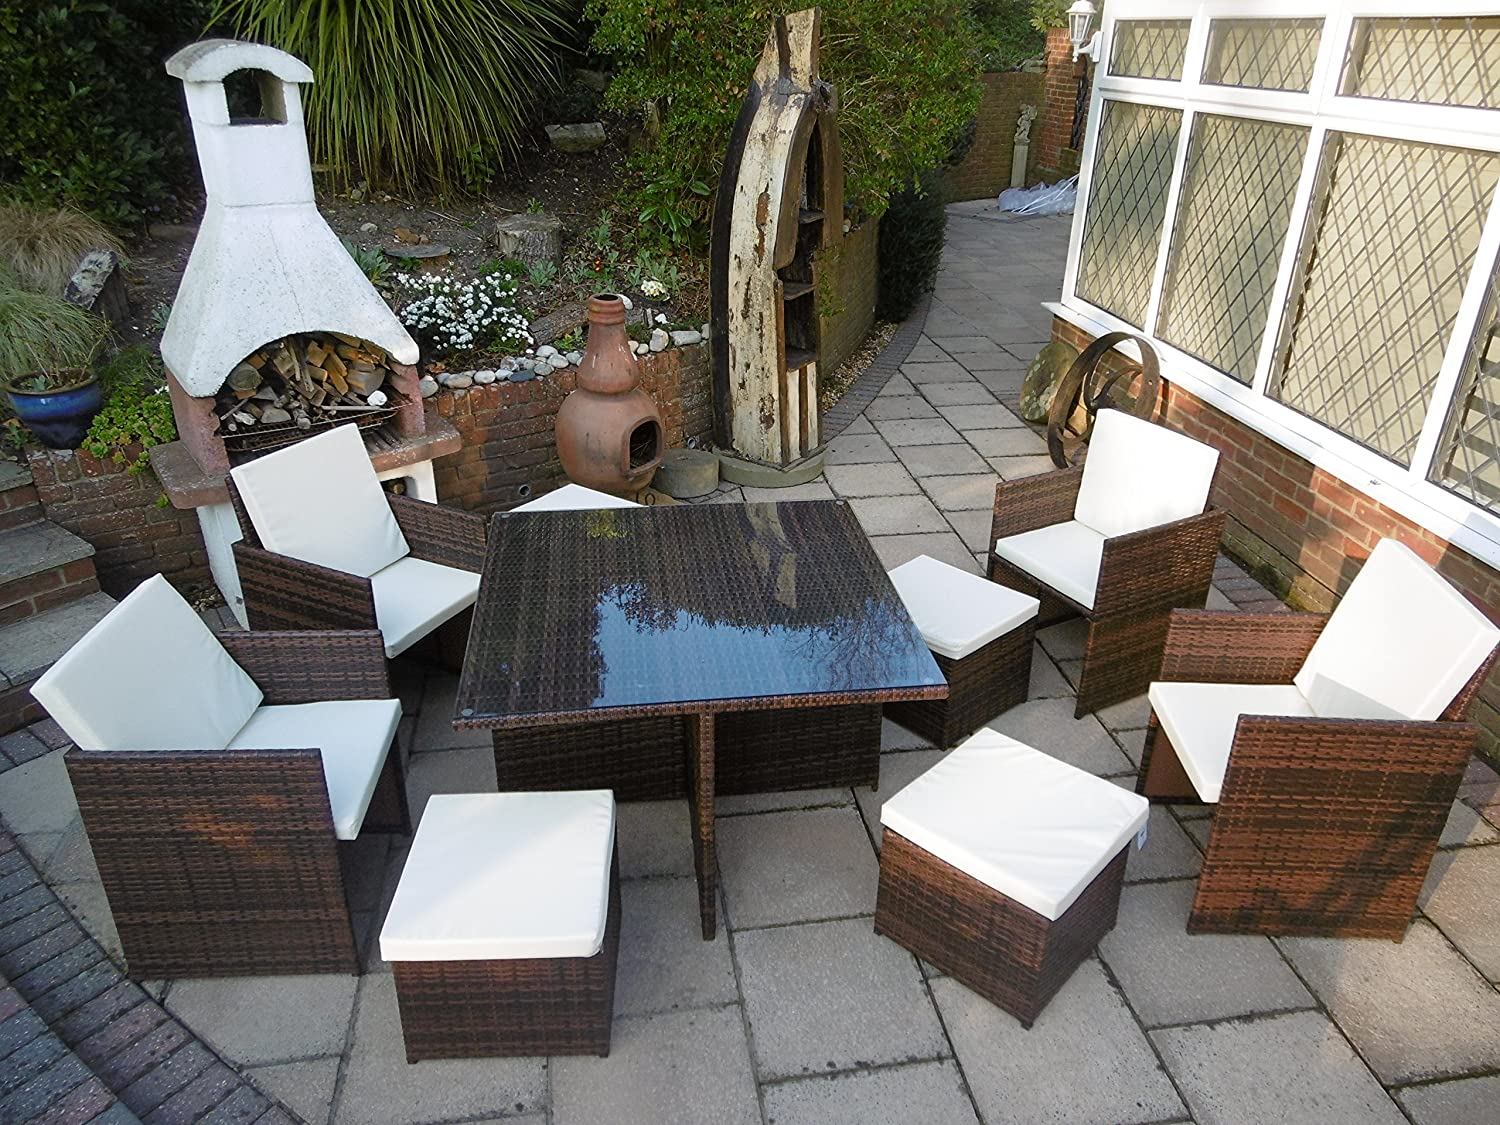 pe rattan gartenm bel cube set esstisch stuhl fu schemel 9 st ck 4 st hle 4 hocker braun jetzt. Black Bedroom Furniture Sets. Home Design Ideas